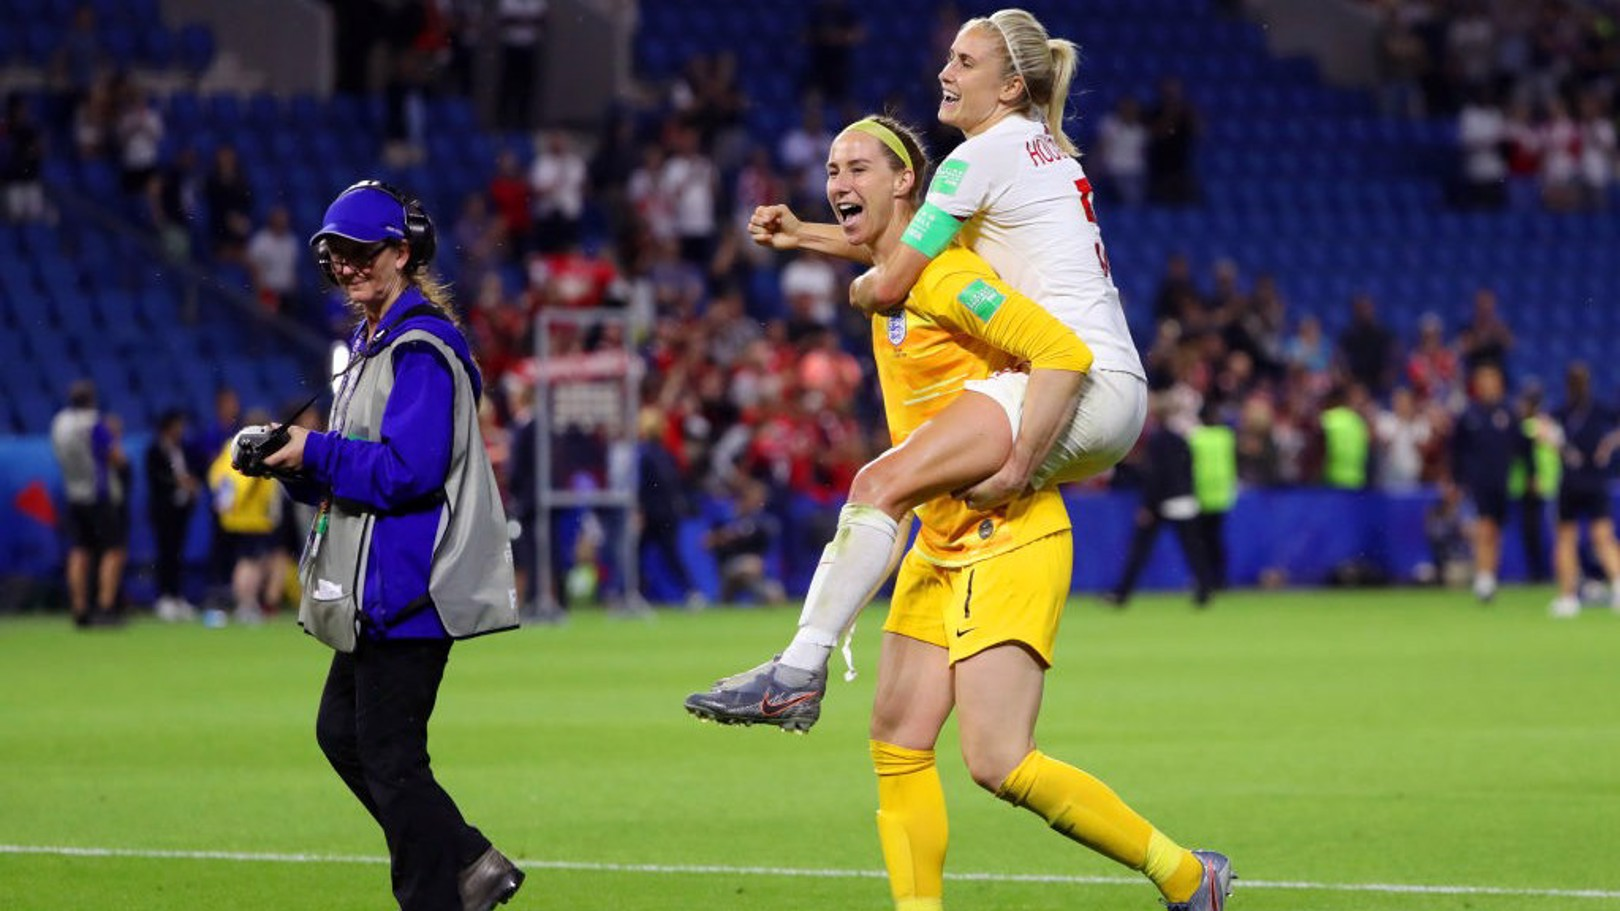 DELIGHT: Karen Bardsley and Steph Houghton celebrate in Le Havre.